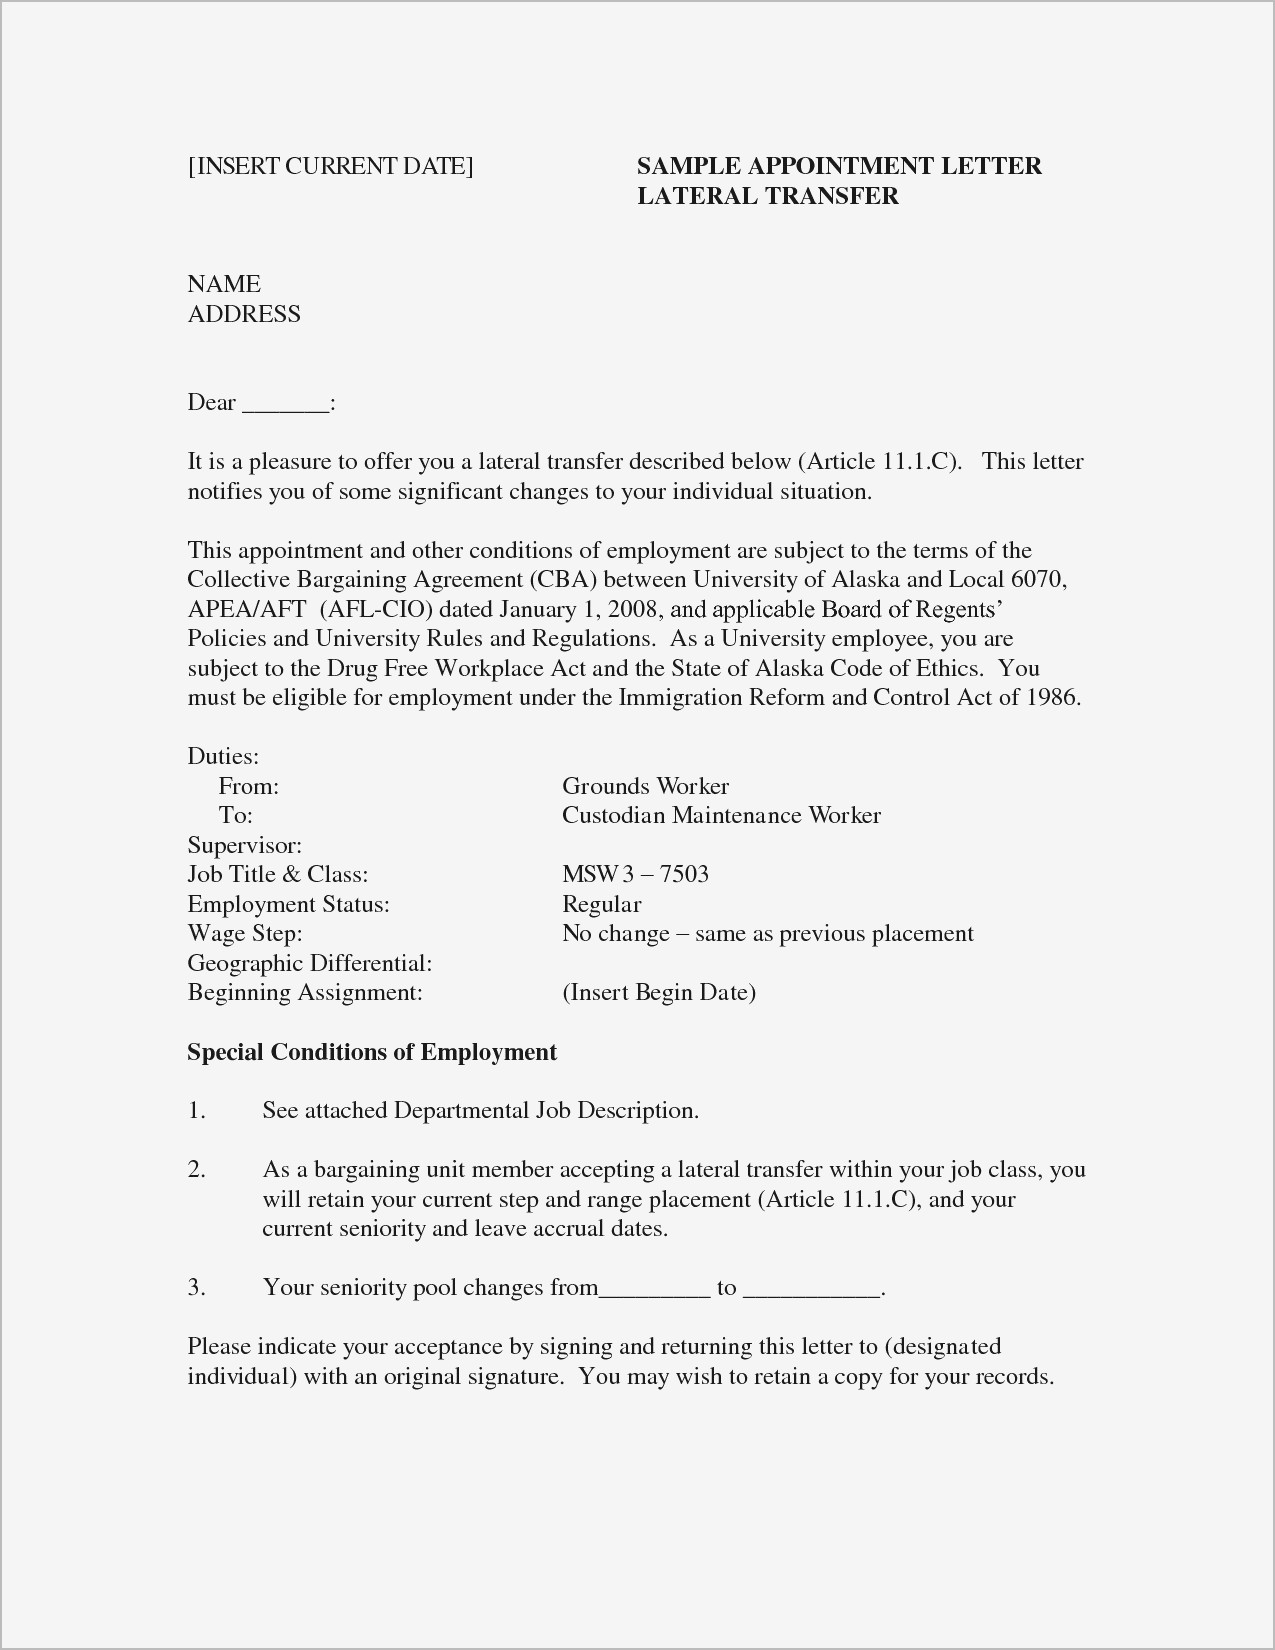 Salary Verification Letter Template - Cover Letter Examples for Job Samples